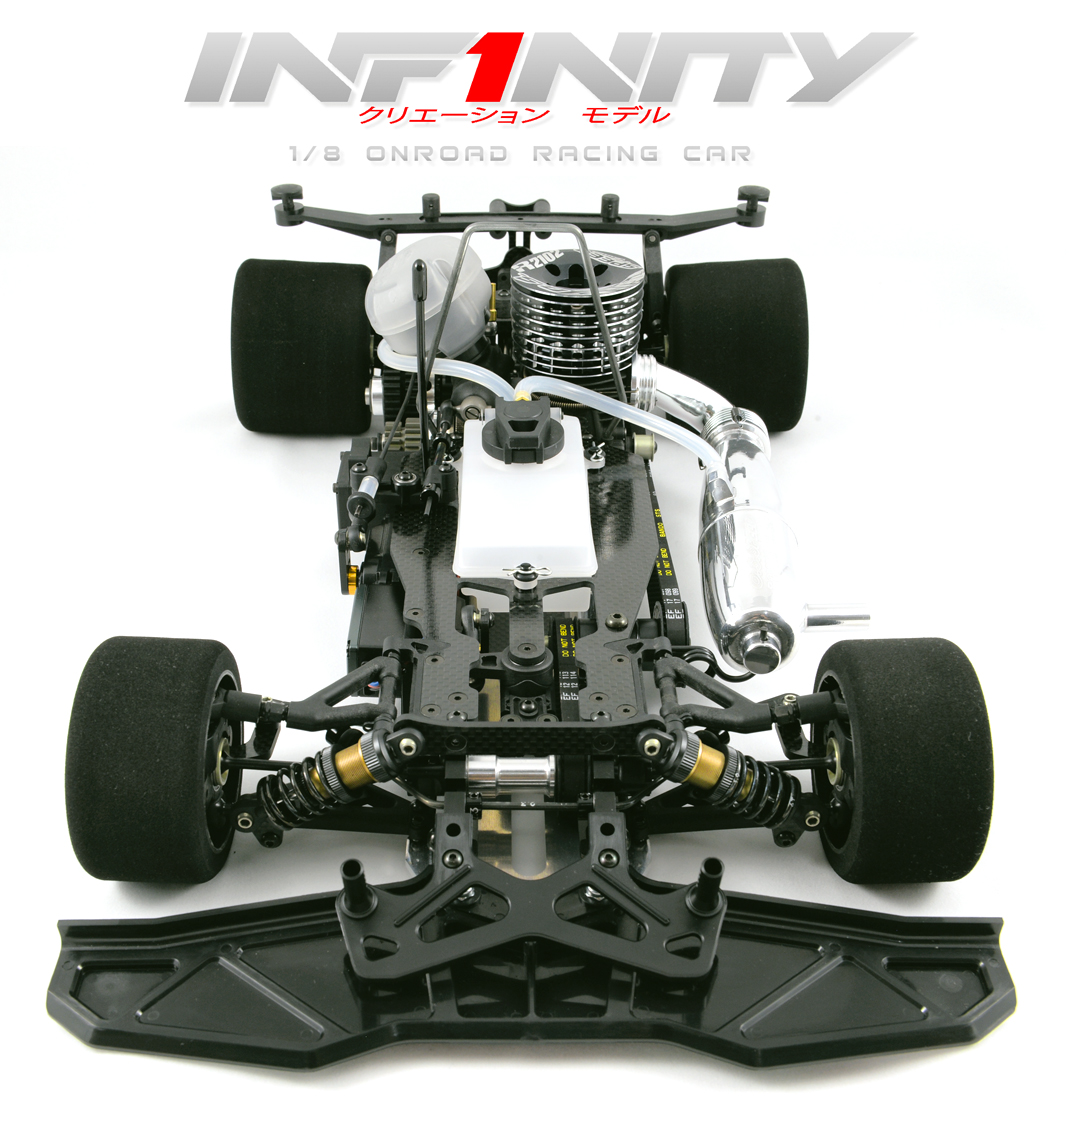 Infinity 1/8 On-road Kit